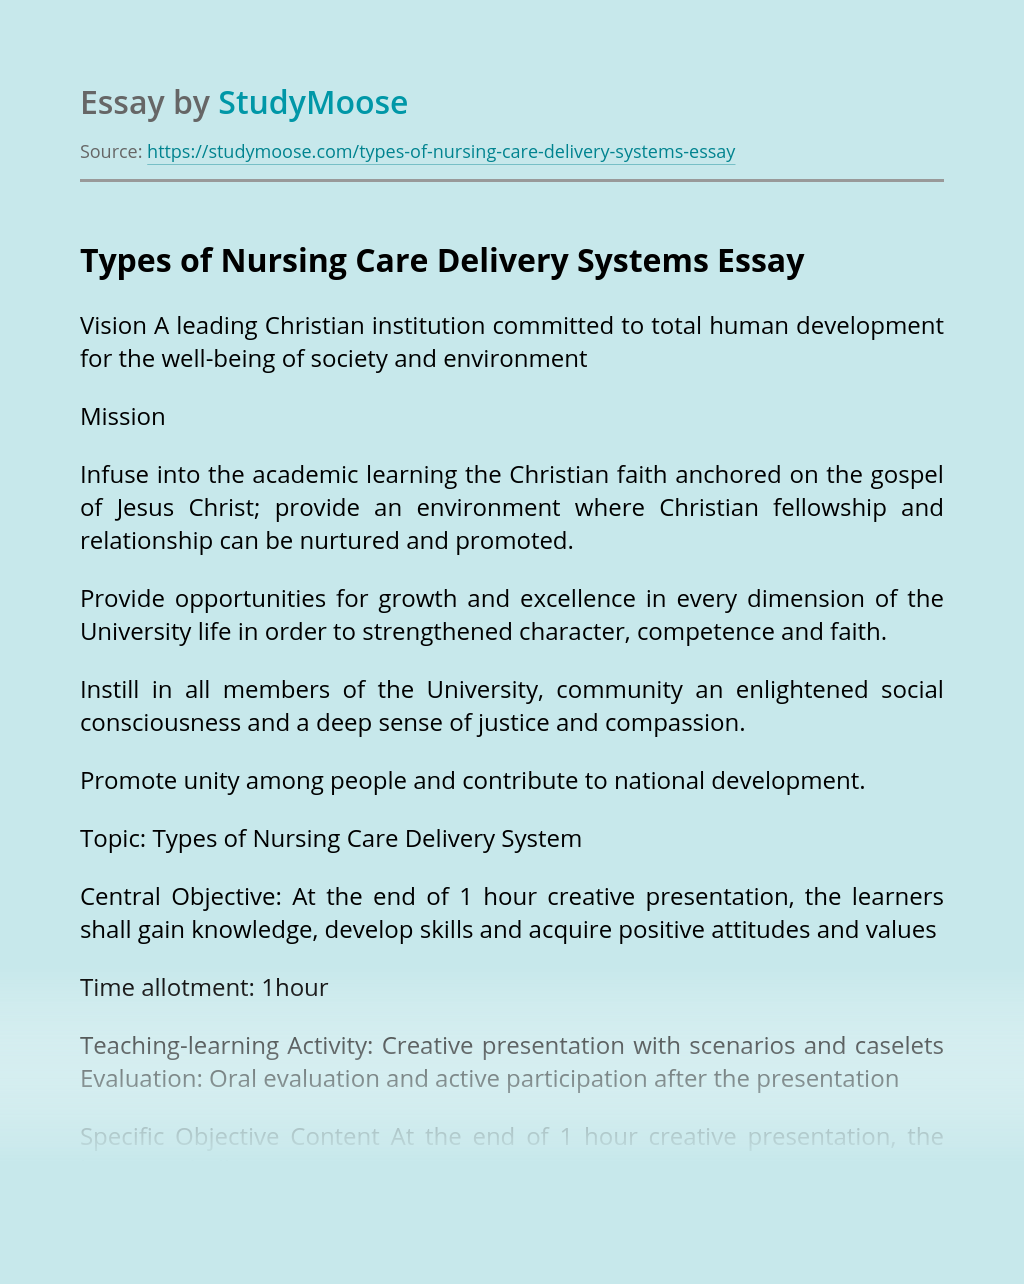 Types of Nursing Care Delivery Systems